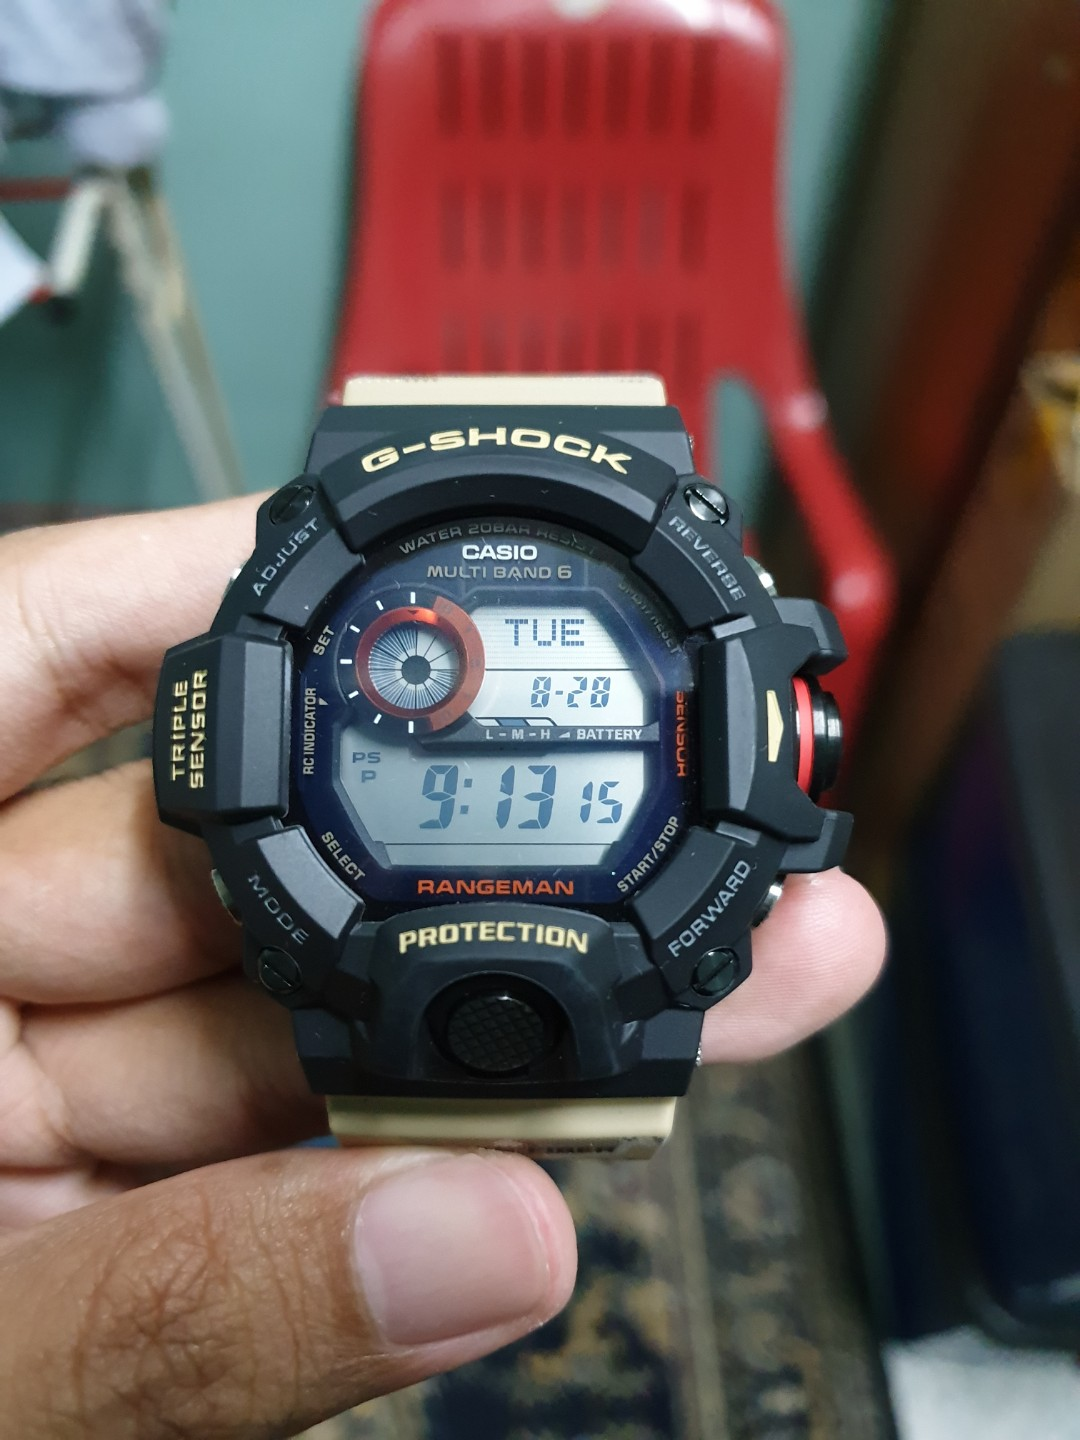 Gshock G Shock Gw9400dcj Gw 9400dcj Mens Fashion Watches On Carousell Casio 1